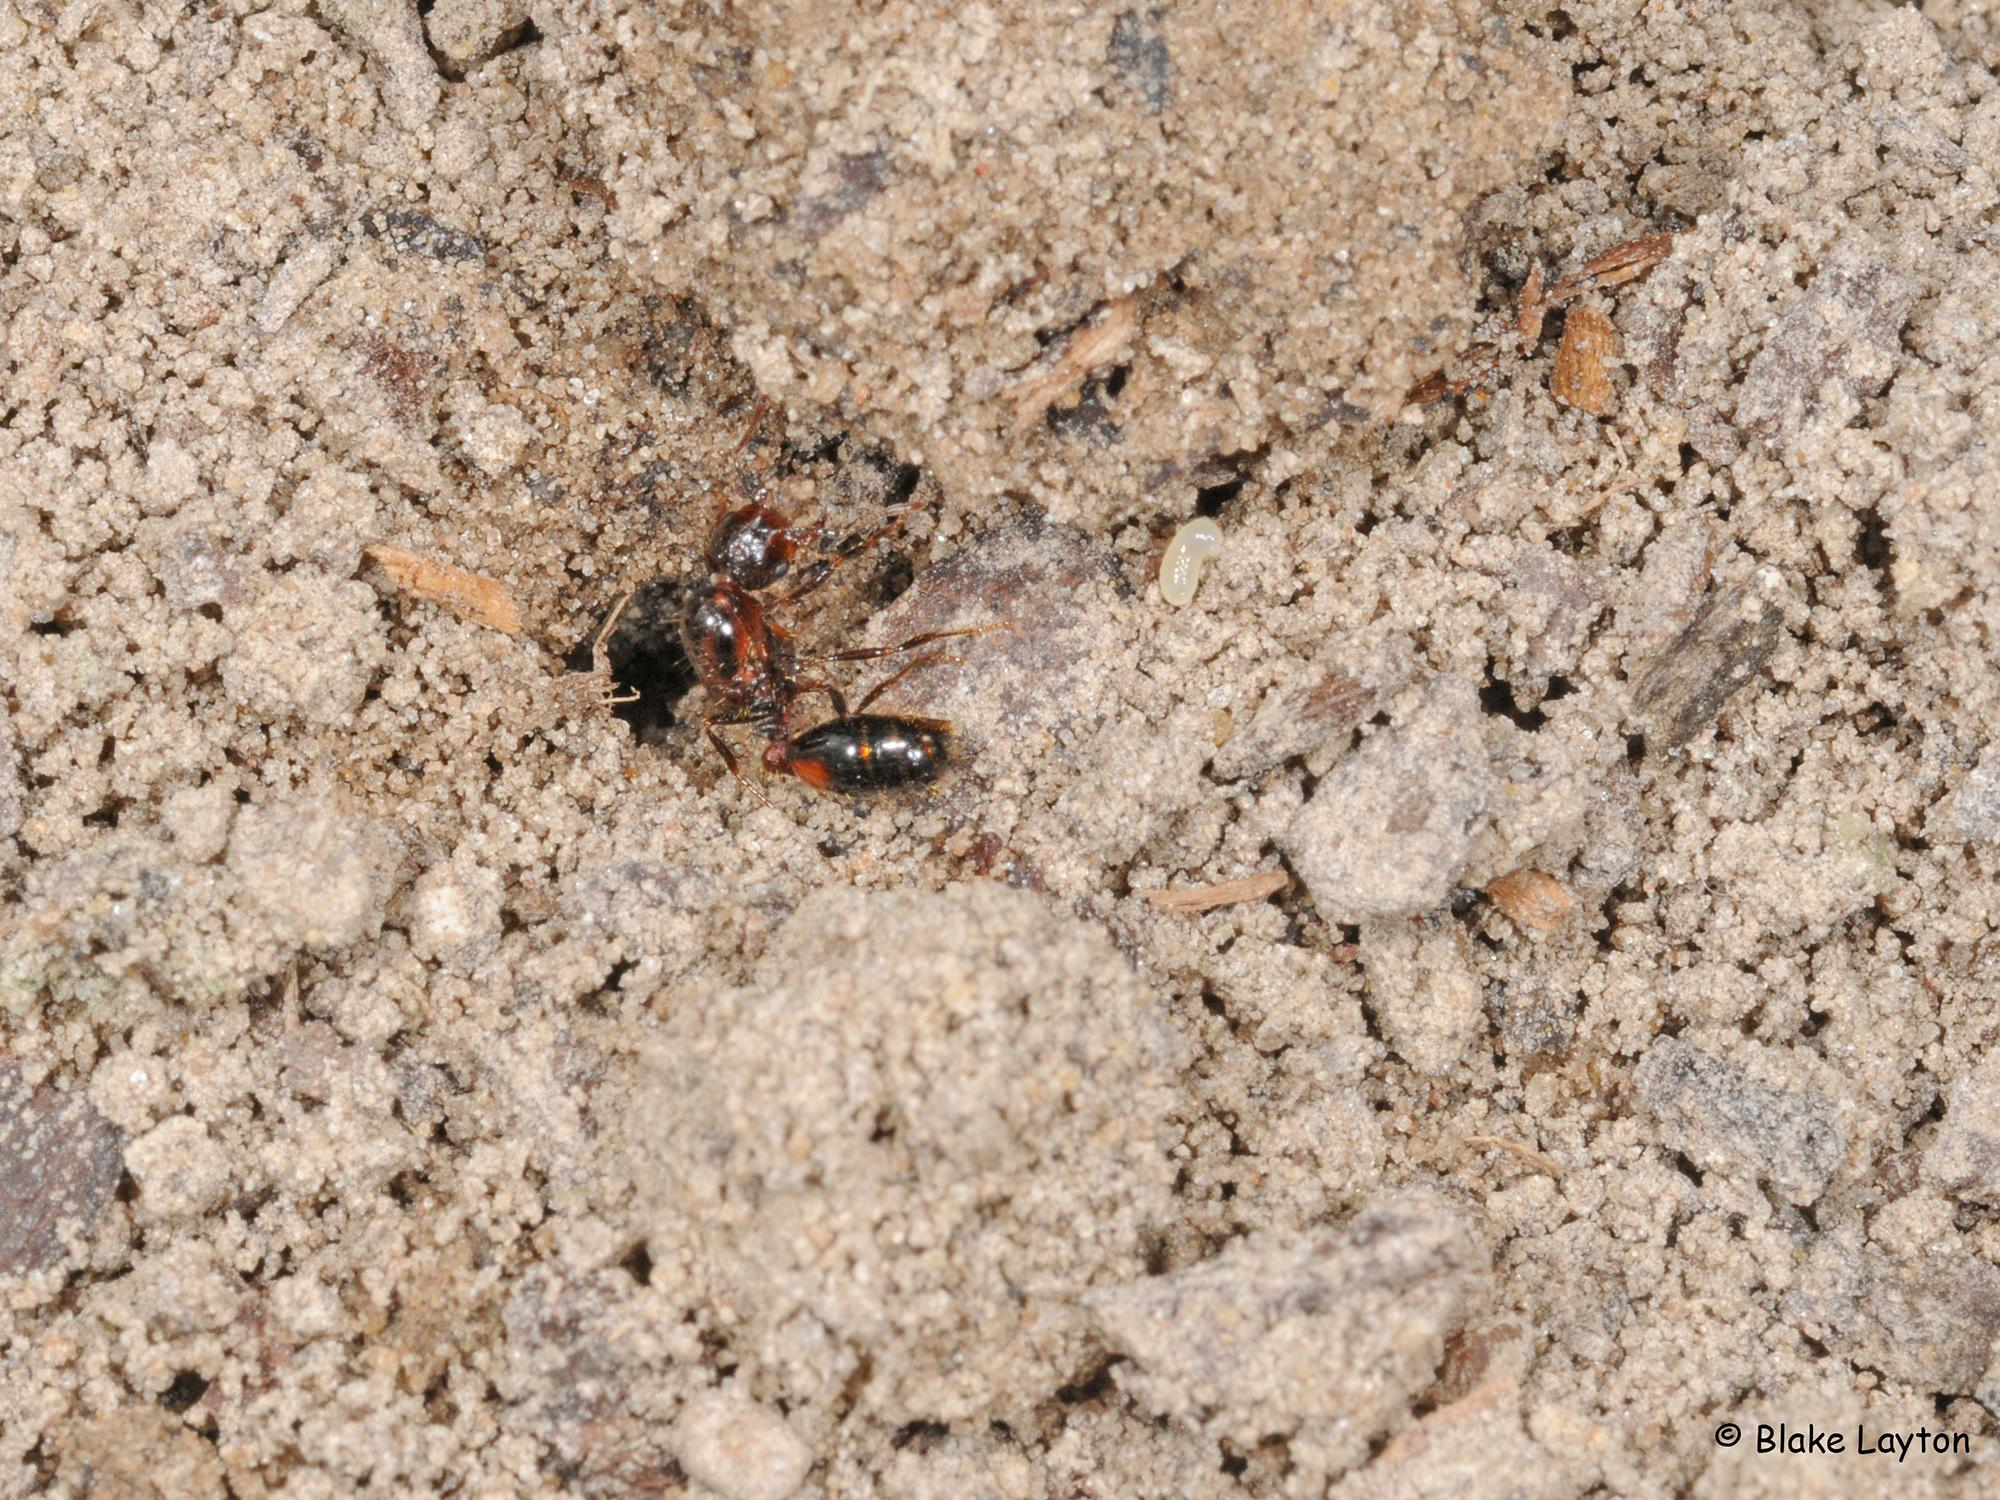 An Imported Fire Ant queen digging in soil.